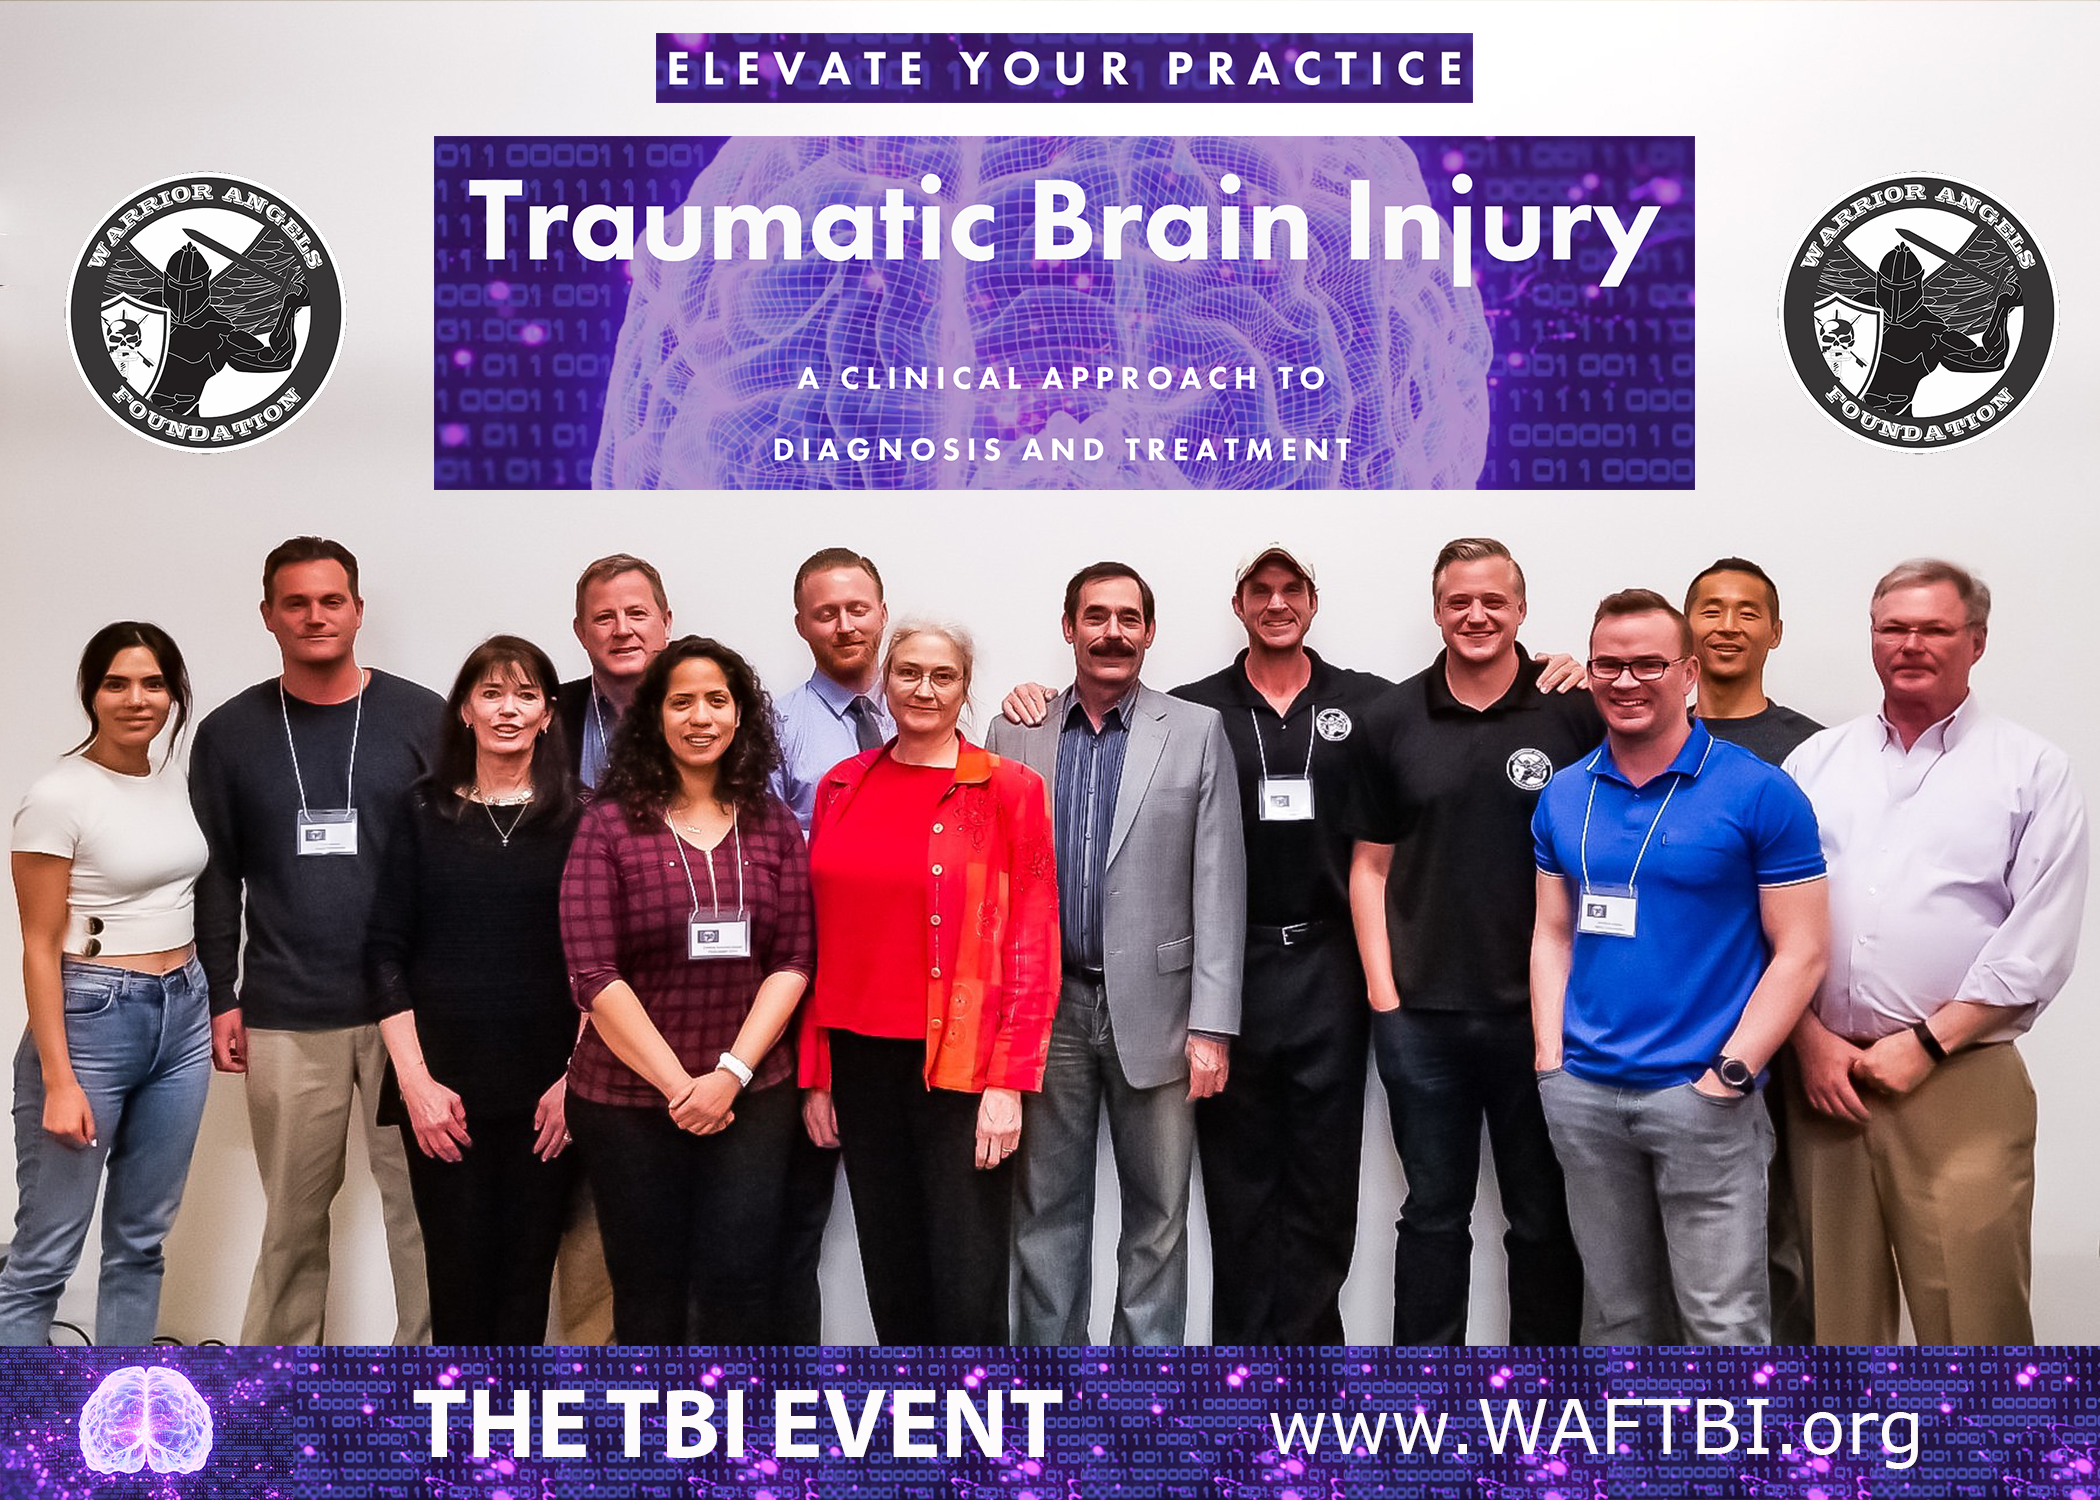 Dr. Gordon, Andrew, Adam and the absolutely amazing participants of the MWAF TBI Training Event beta launch held April 4-5th, 2019 in beautiful Marina del Rey, California.